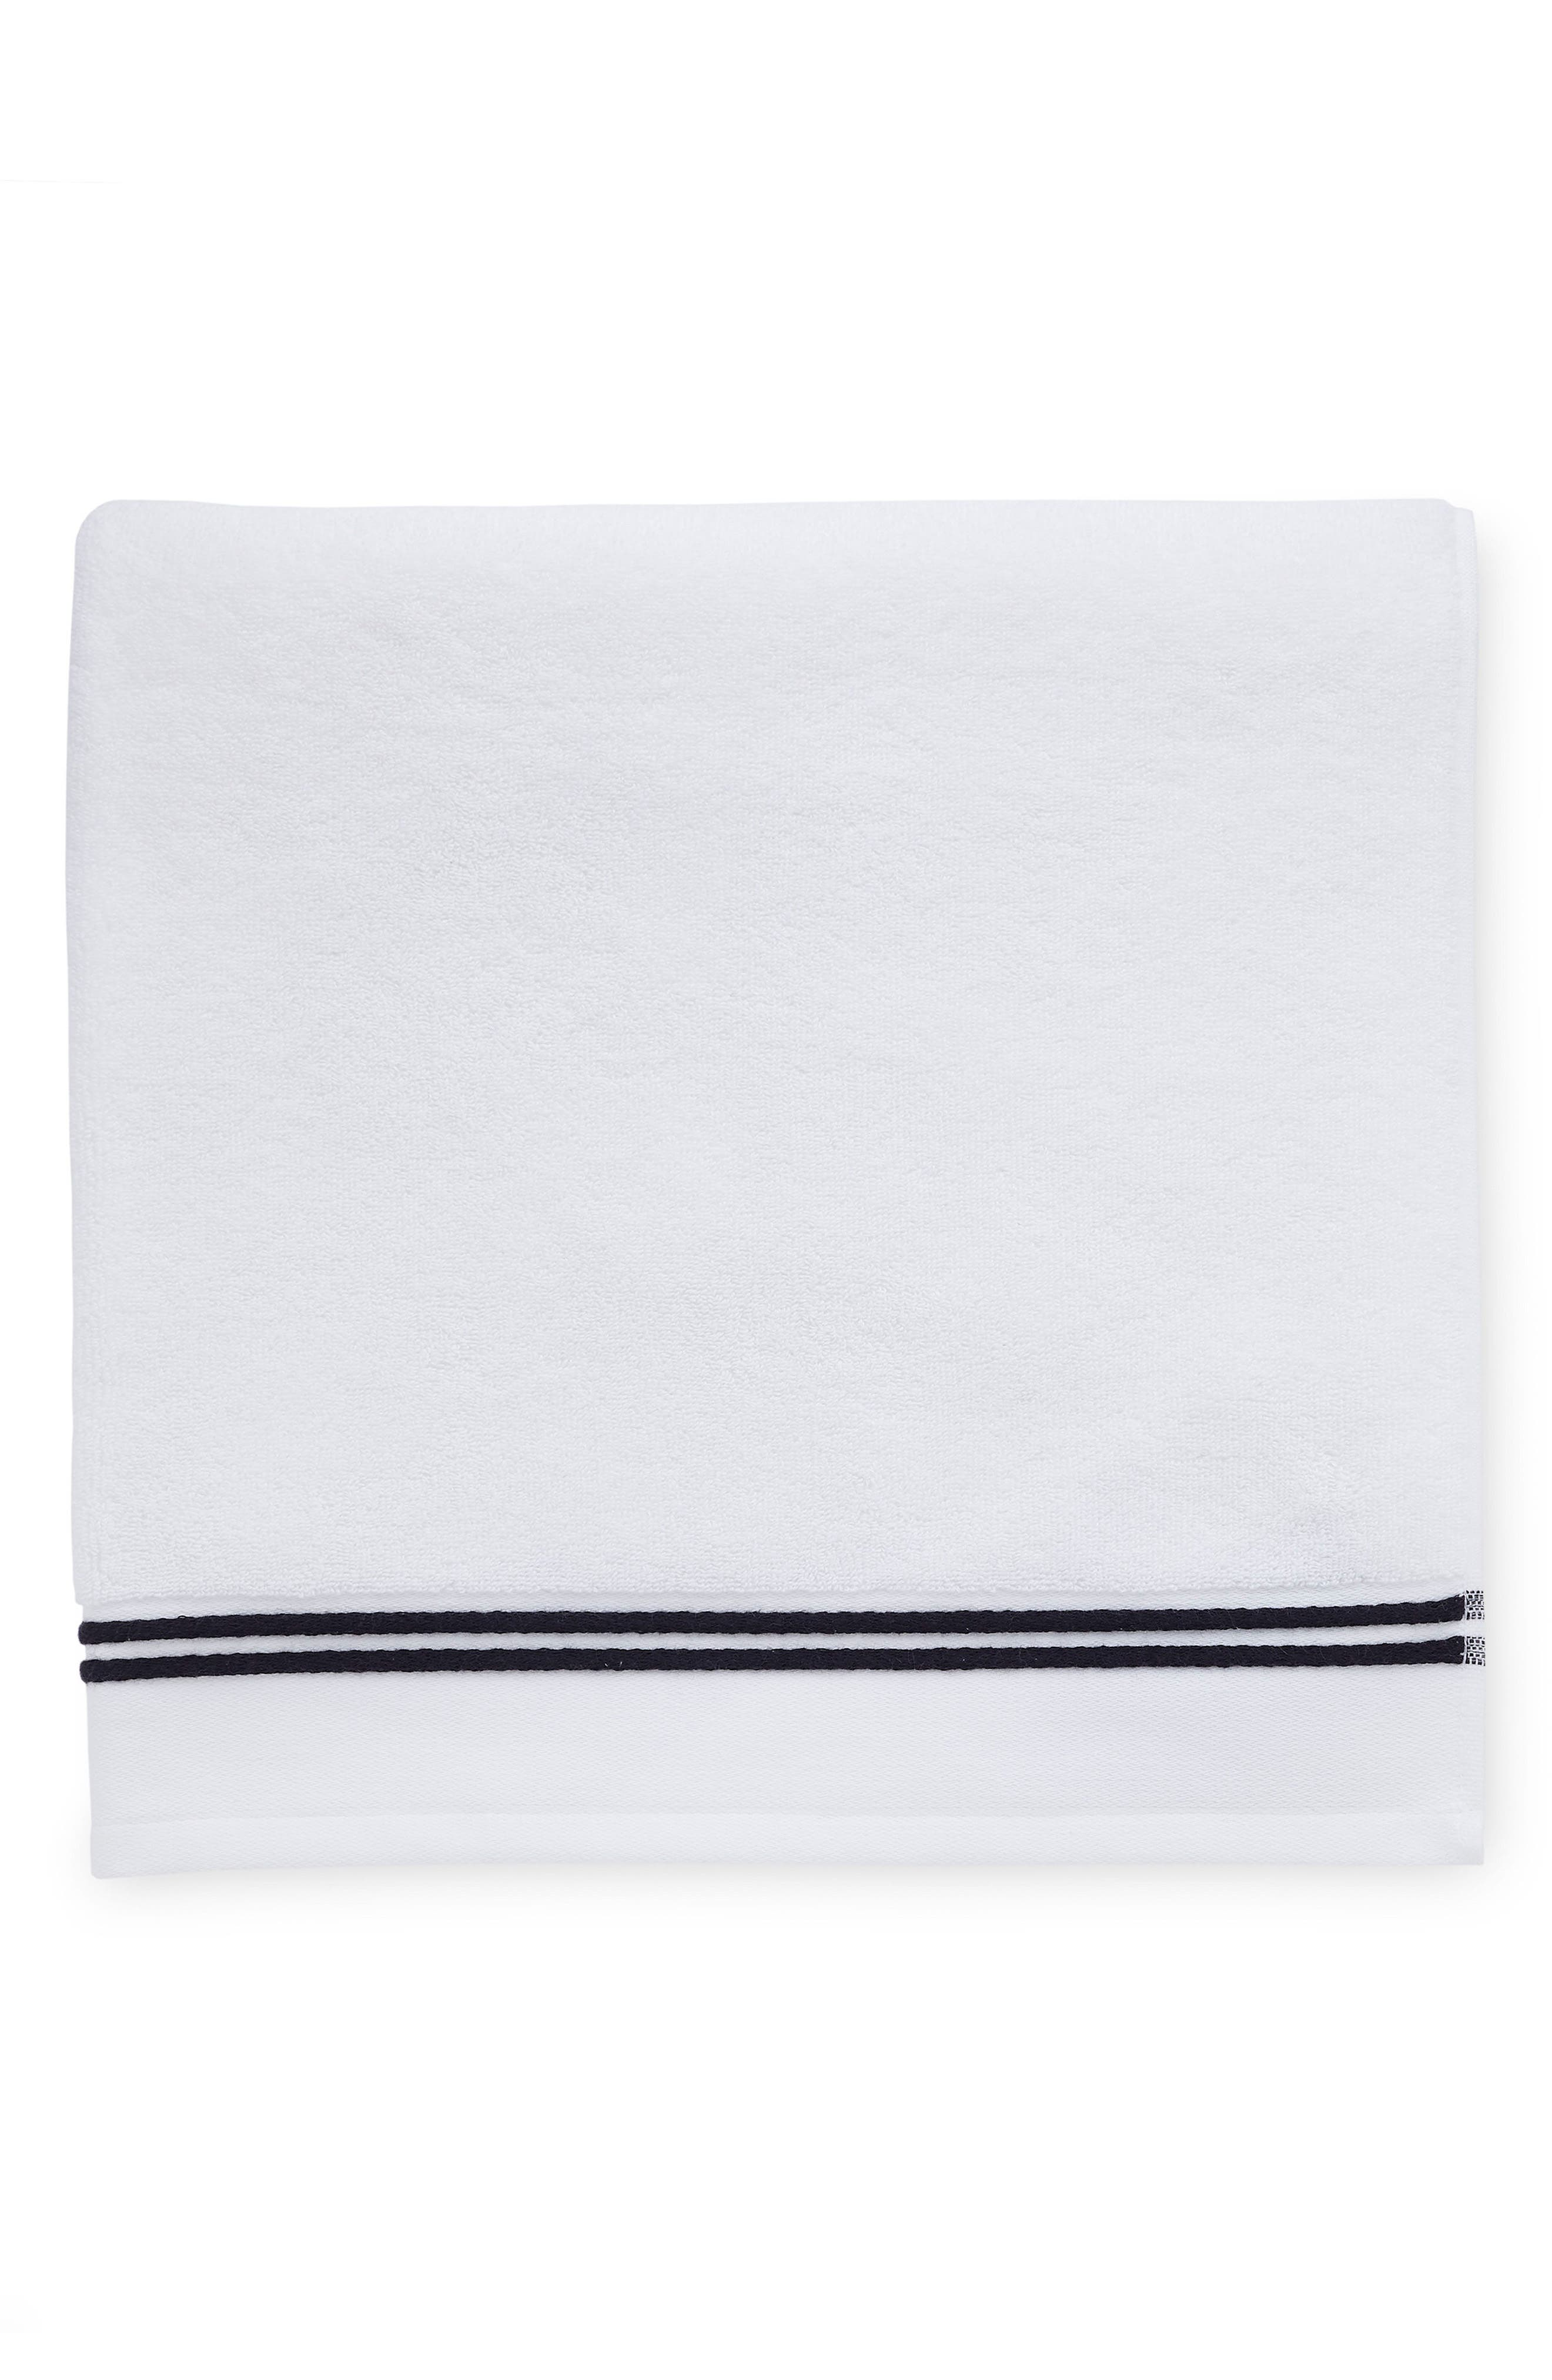 Main Image - SFERRA Aura Bath Towel